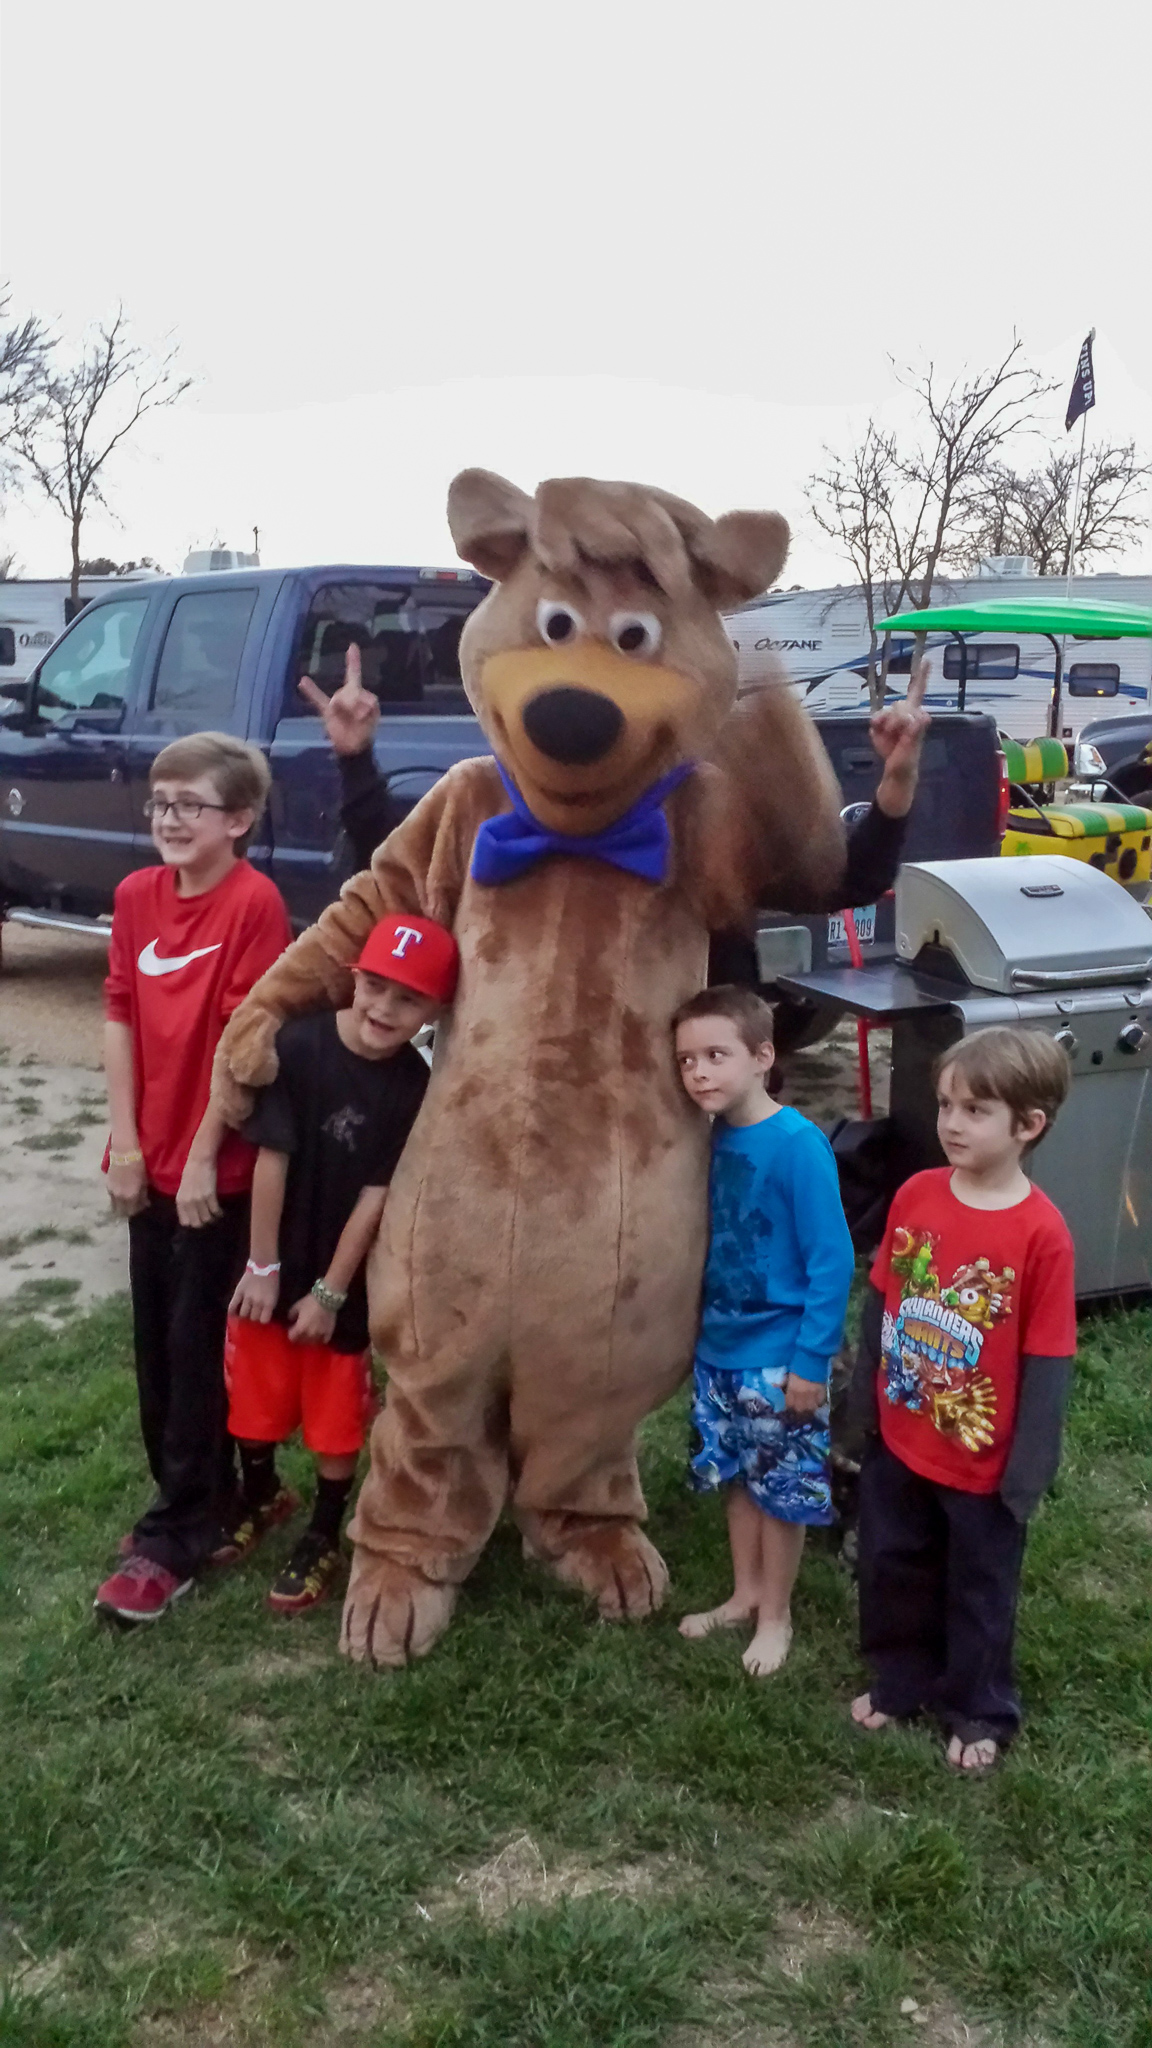 Yogi or one of the other characters will come around to visit during the day. The kids love this!